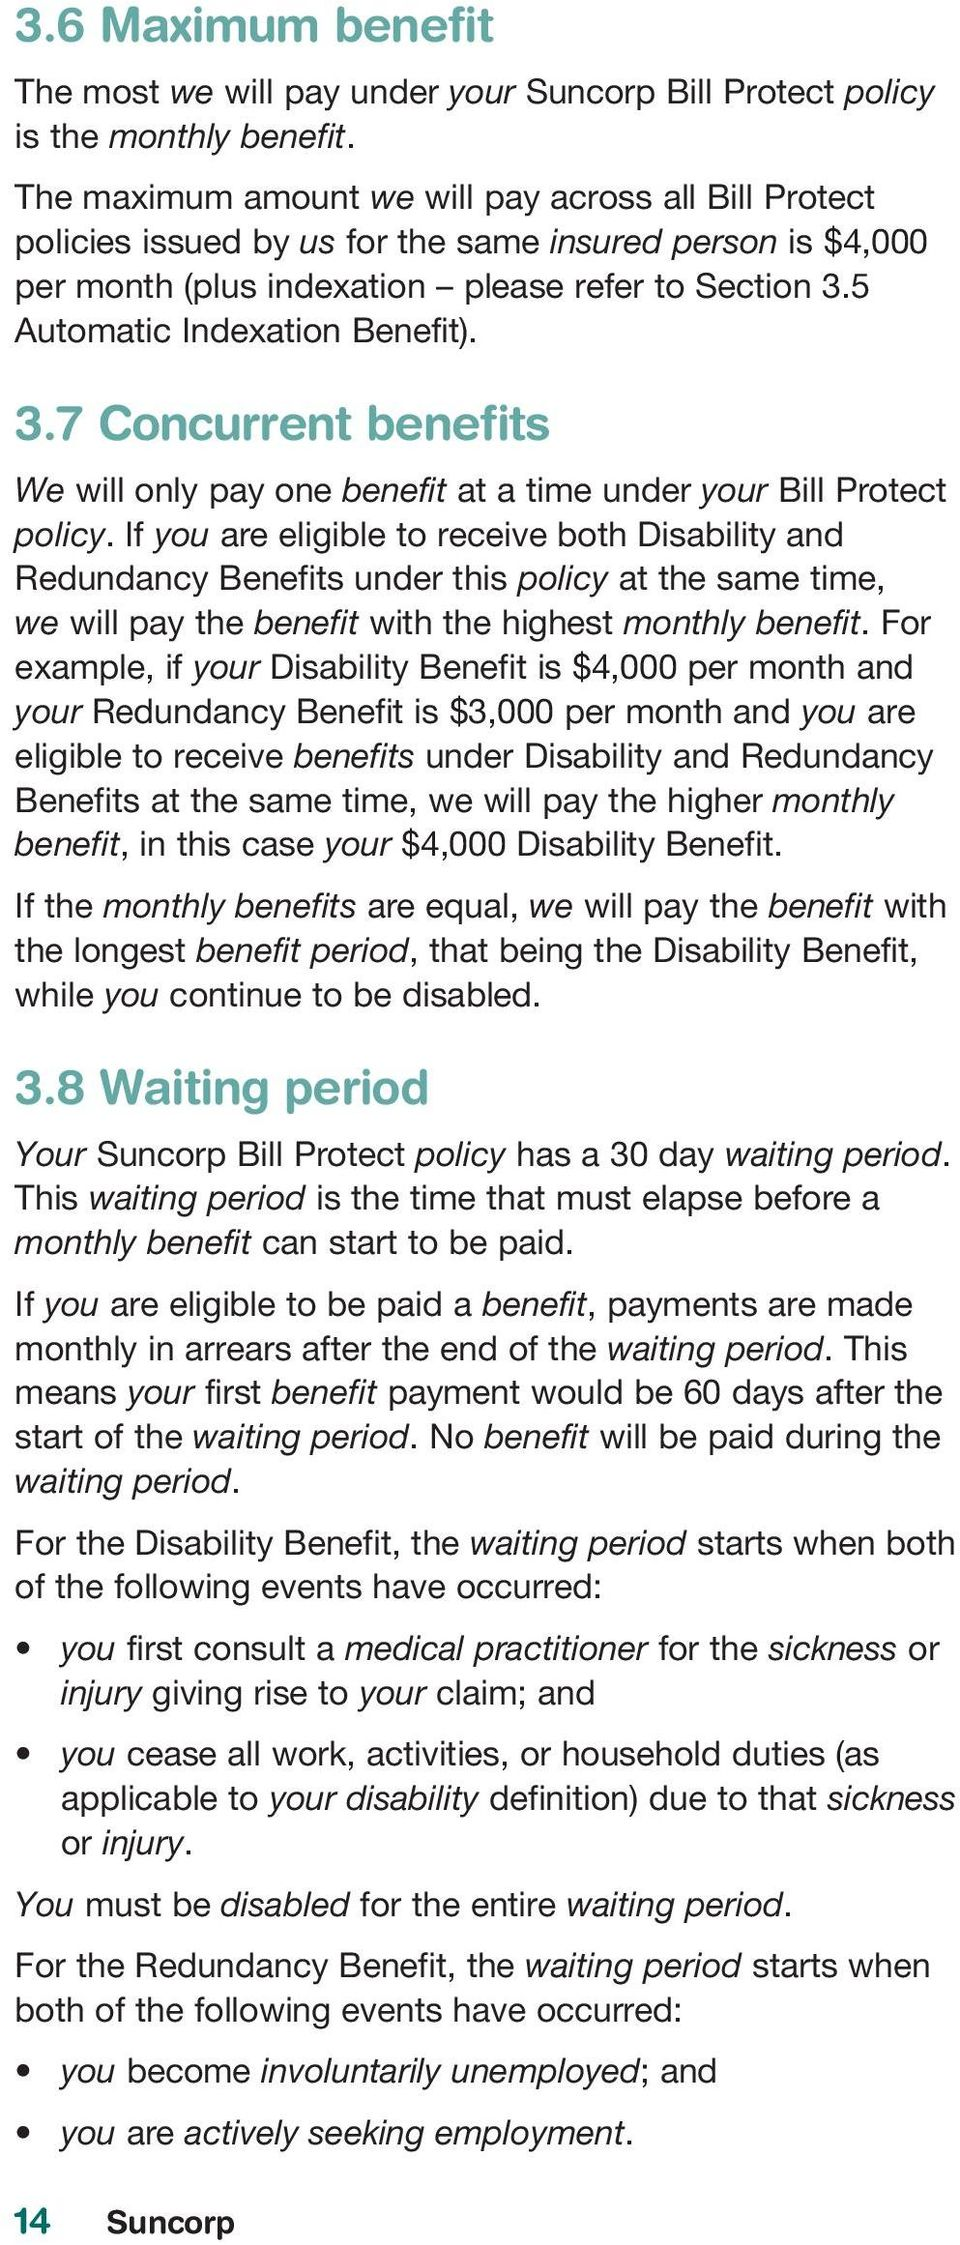 3.7 Concurrent benefits We will only pay one benefit at a time under your Bill Protect policy.